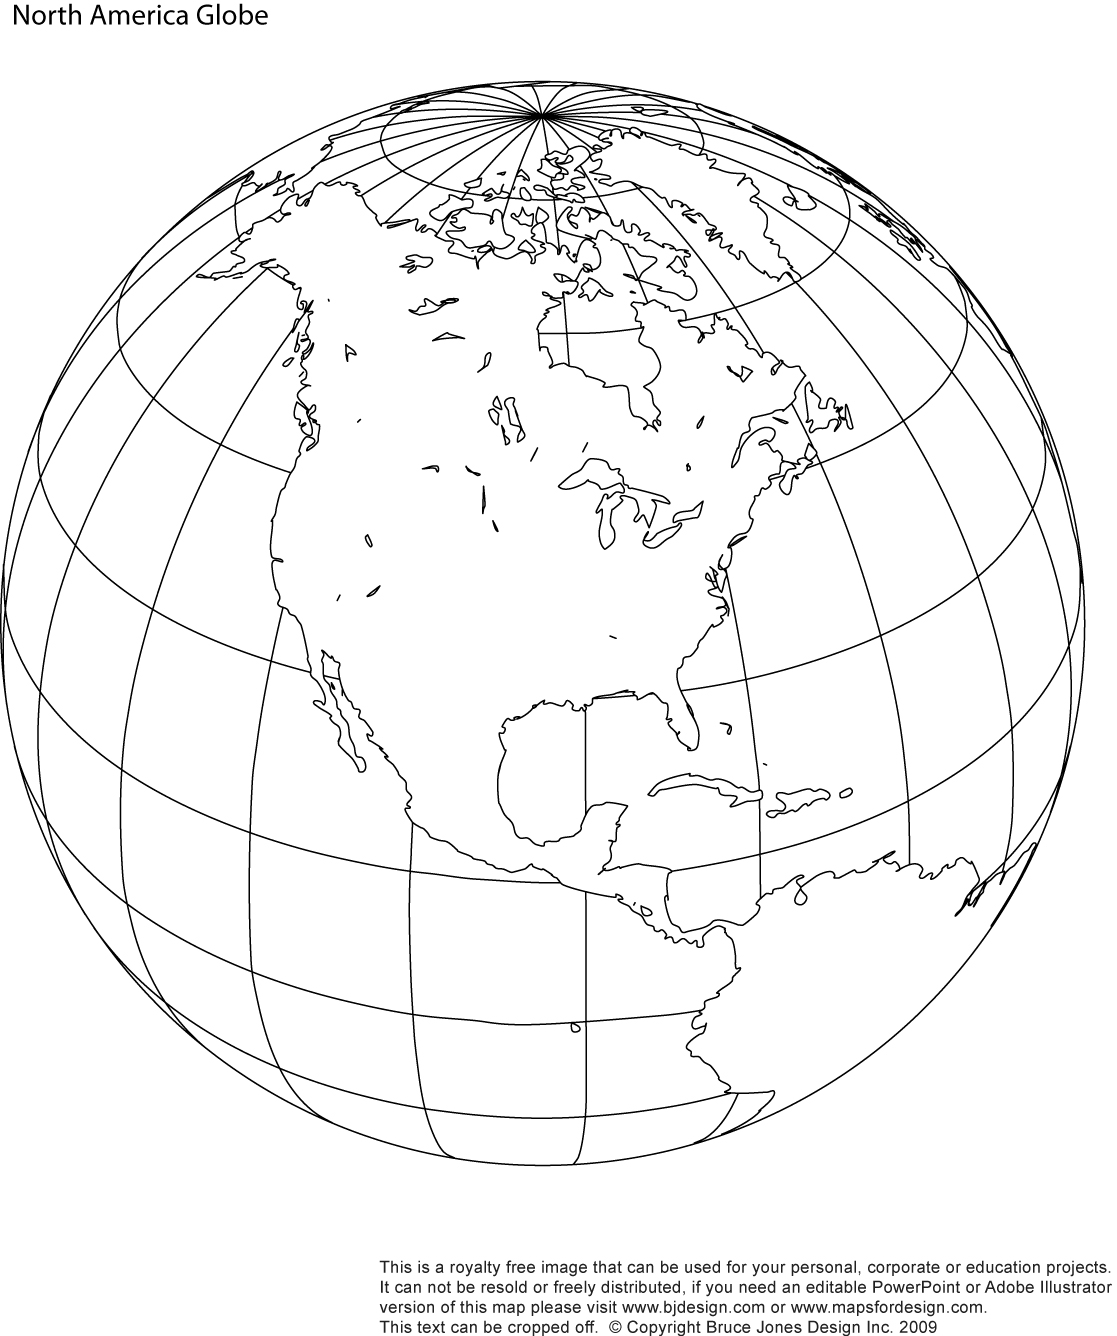 Printable, Blank, World Globe Earth Maps • Royalty Free, jpg on blank map of seattle, blank map of eastern hemisphere, blank map of antarctica, blank map of london, blank map of usa map, blank map of southwestern united states, blank map of maricopa county, blank map of trinidad, blank map of rome, blank map of lafayette, blank map of northern hemisphere, blank map of san francisco, blank map of united states map, blank map of continents, blank map of cleveland, blank map of pensacola, blank map of prime meridian,